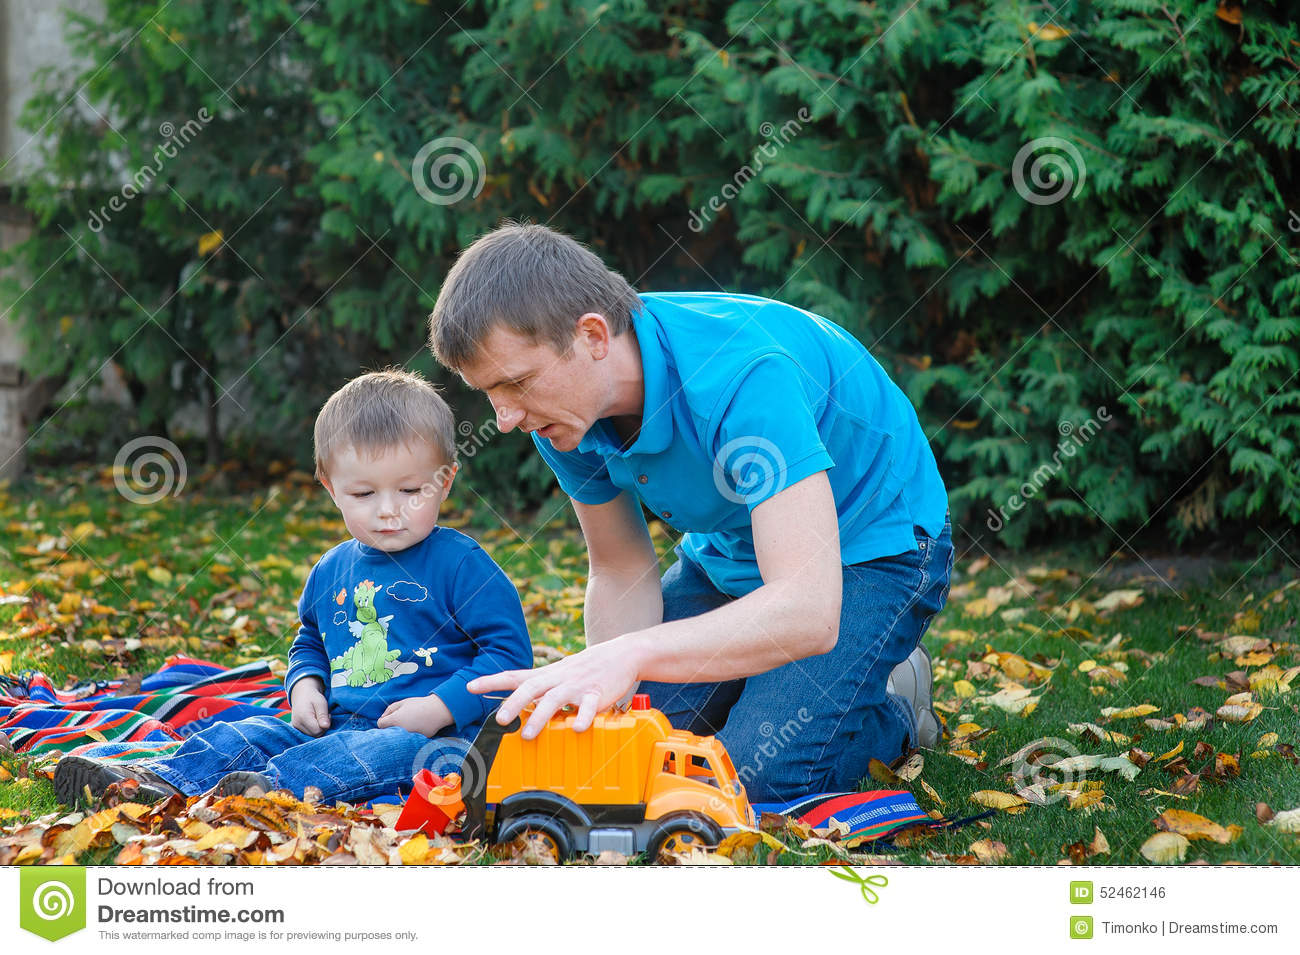 751cce8ae Father And Son Playing In The Park Toy Car In A Park On The Gras ...